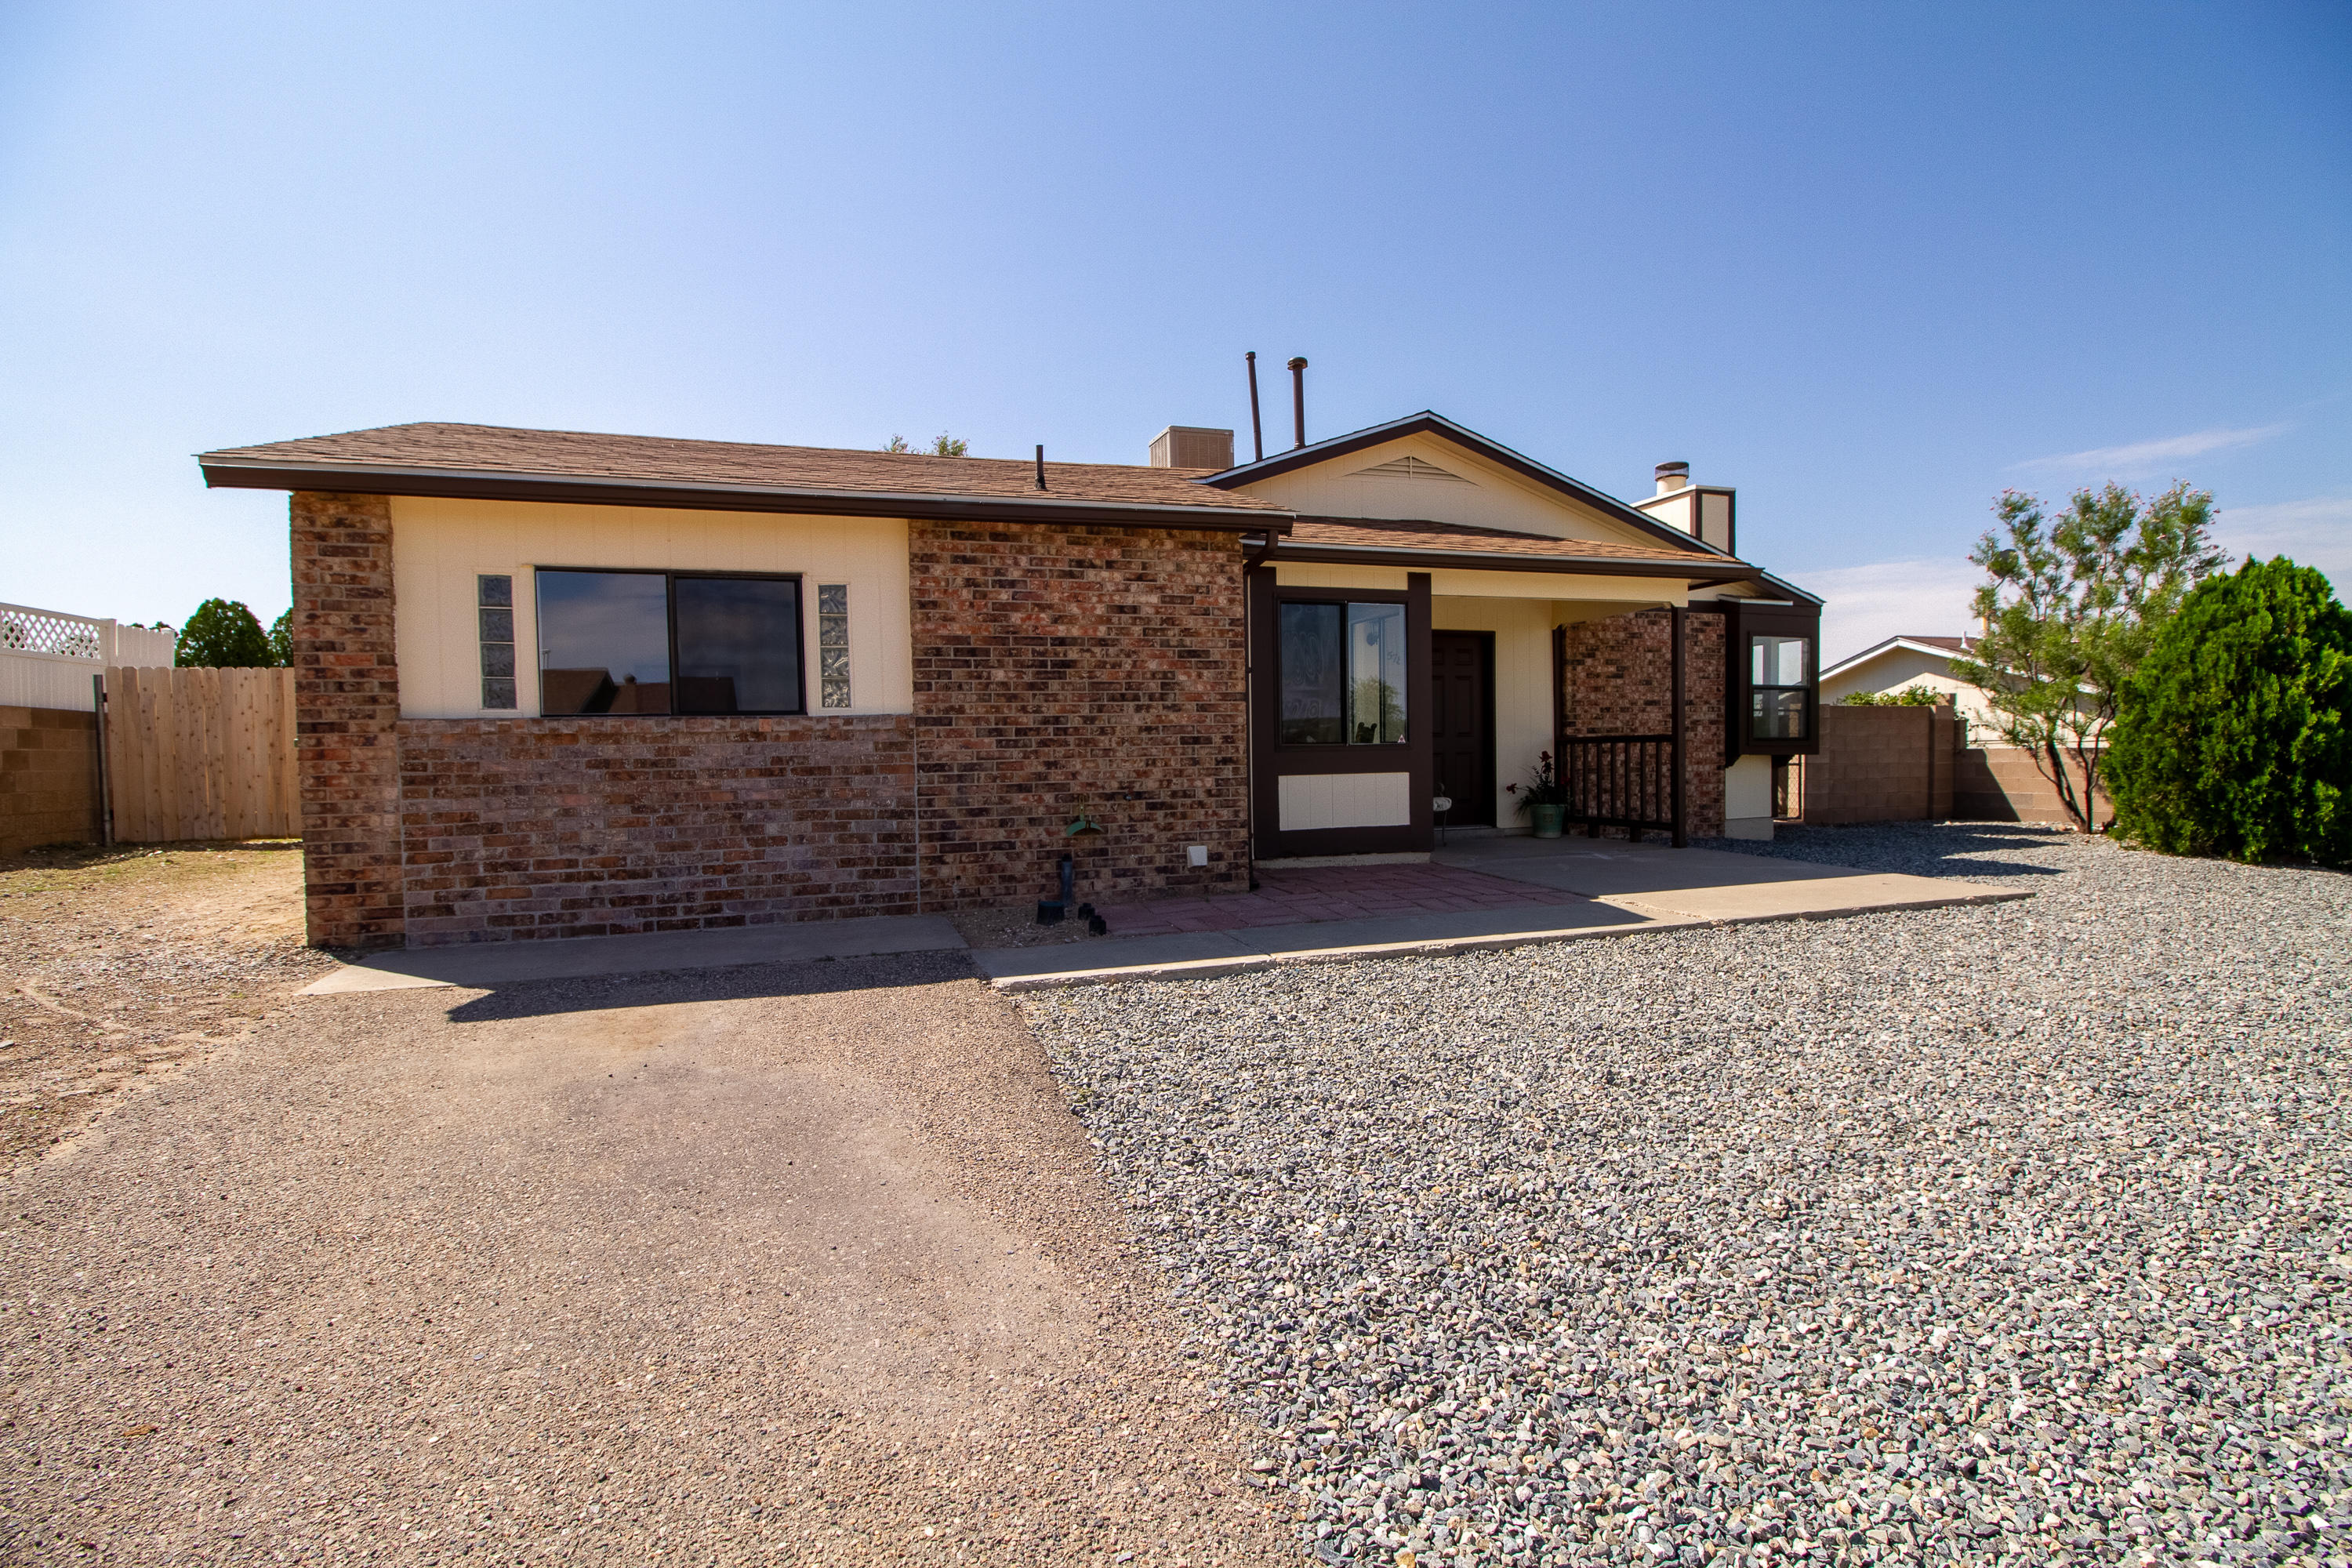 Come see this lovely home, is a five minute drive from Rio Rancho shopping. NEW plumbing, NEW roof, NEW paint inside and out, newer evaporative cooler and appliances. Washer, dryer, fridge, and stove are included. Home has backyard access with a LARGE back yard and a storage shed. This home won't last long!